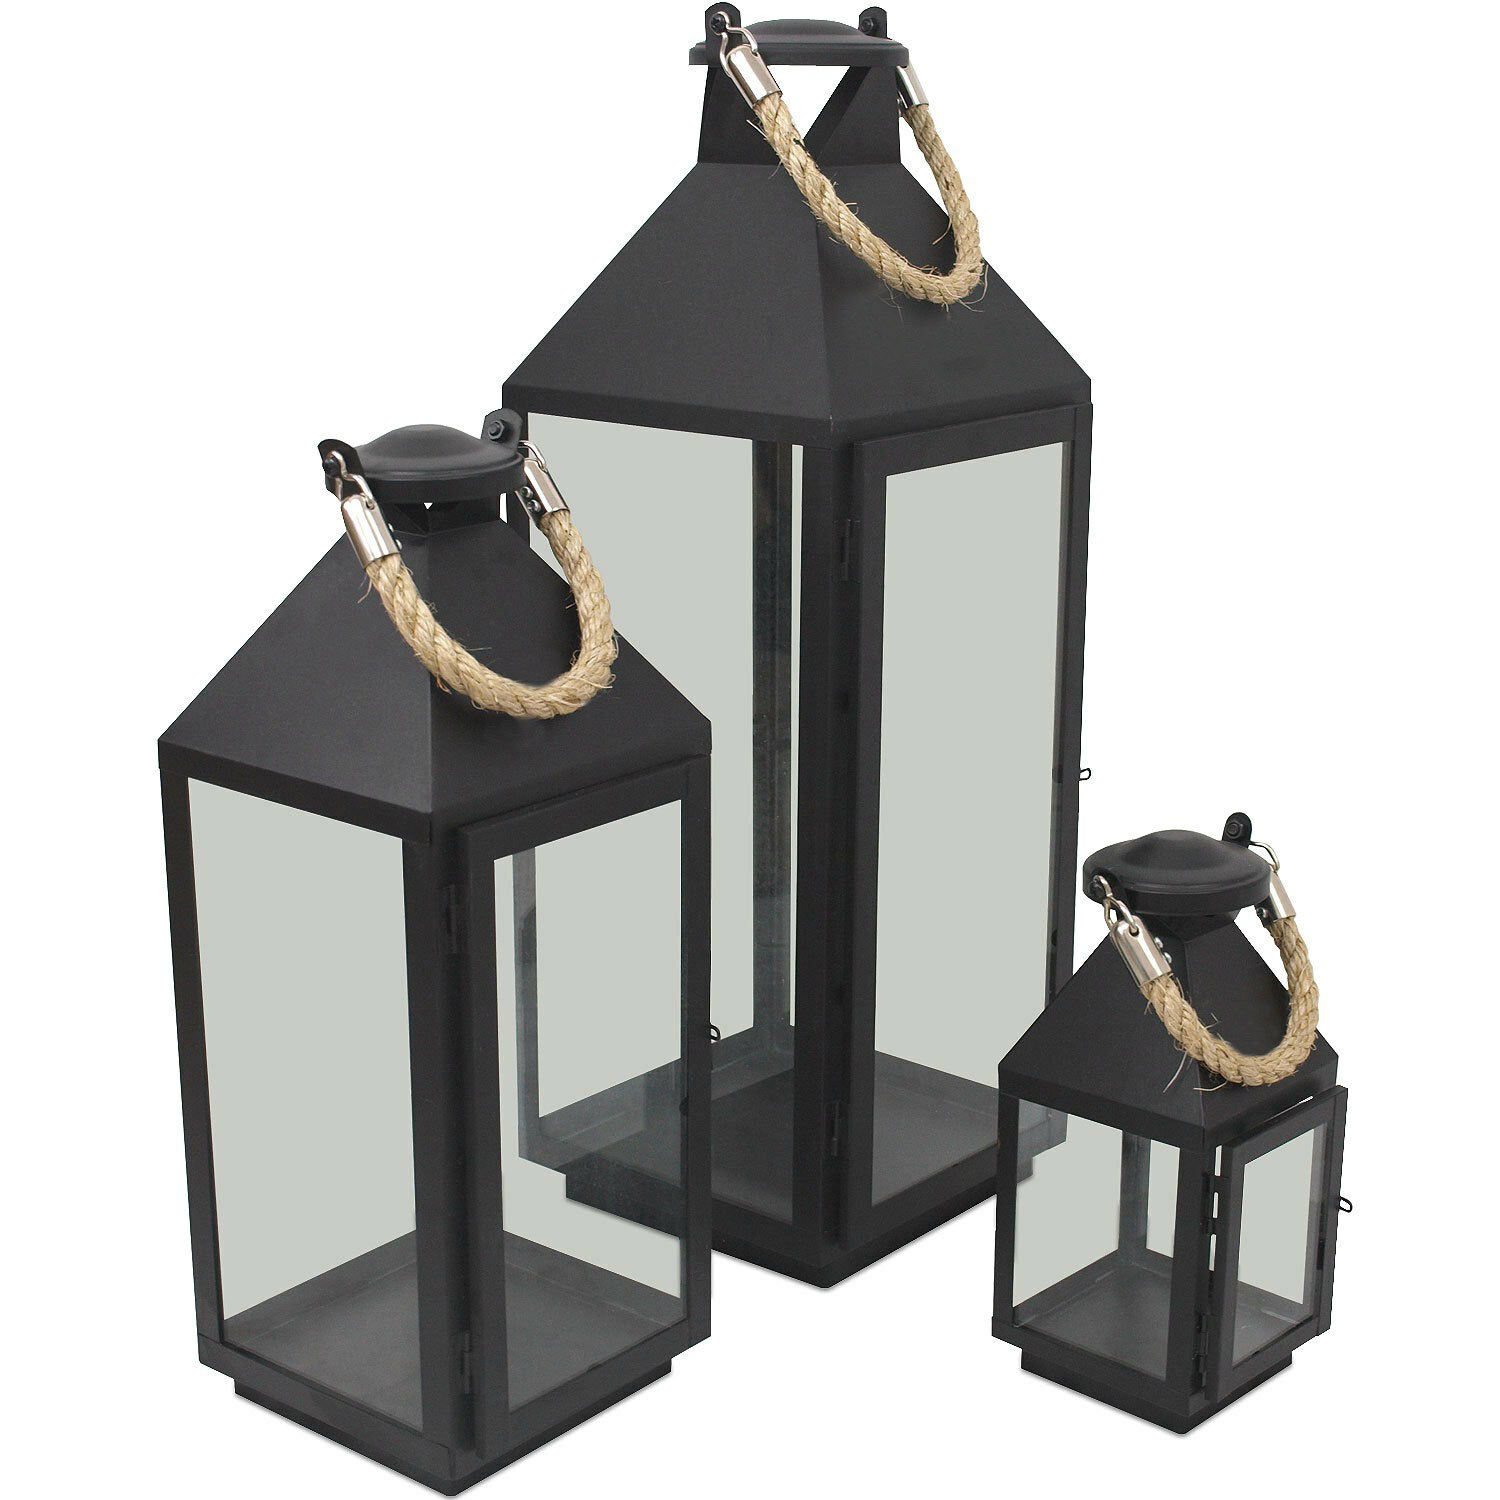 3er set laternen windlichter h24 41 55cm metall glas gartenlaterne f r kerzen eur 39 99. Black Bedroom Furniture Sets. Home Design Ideas